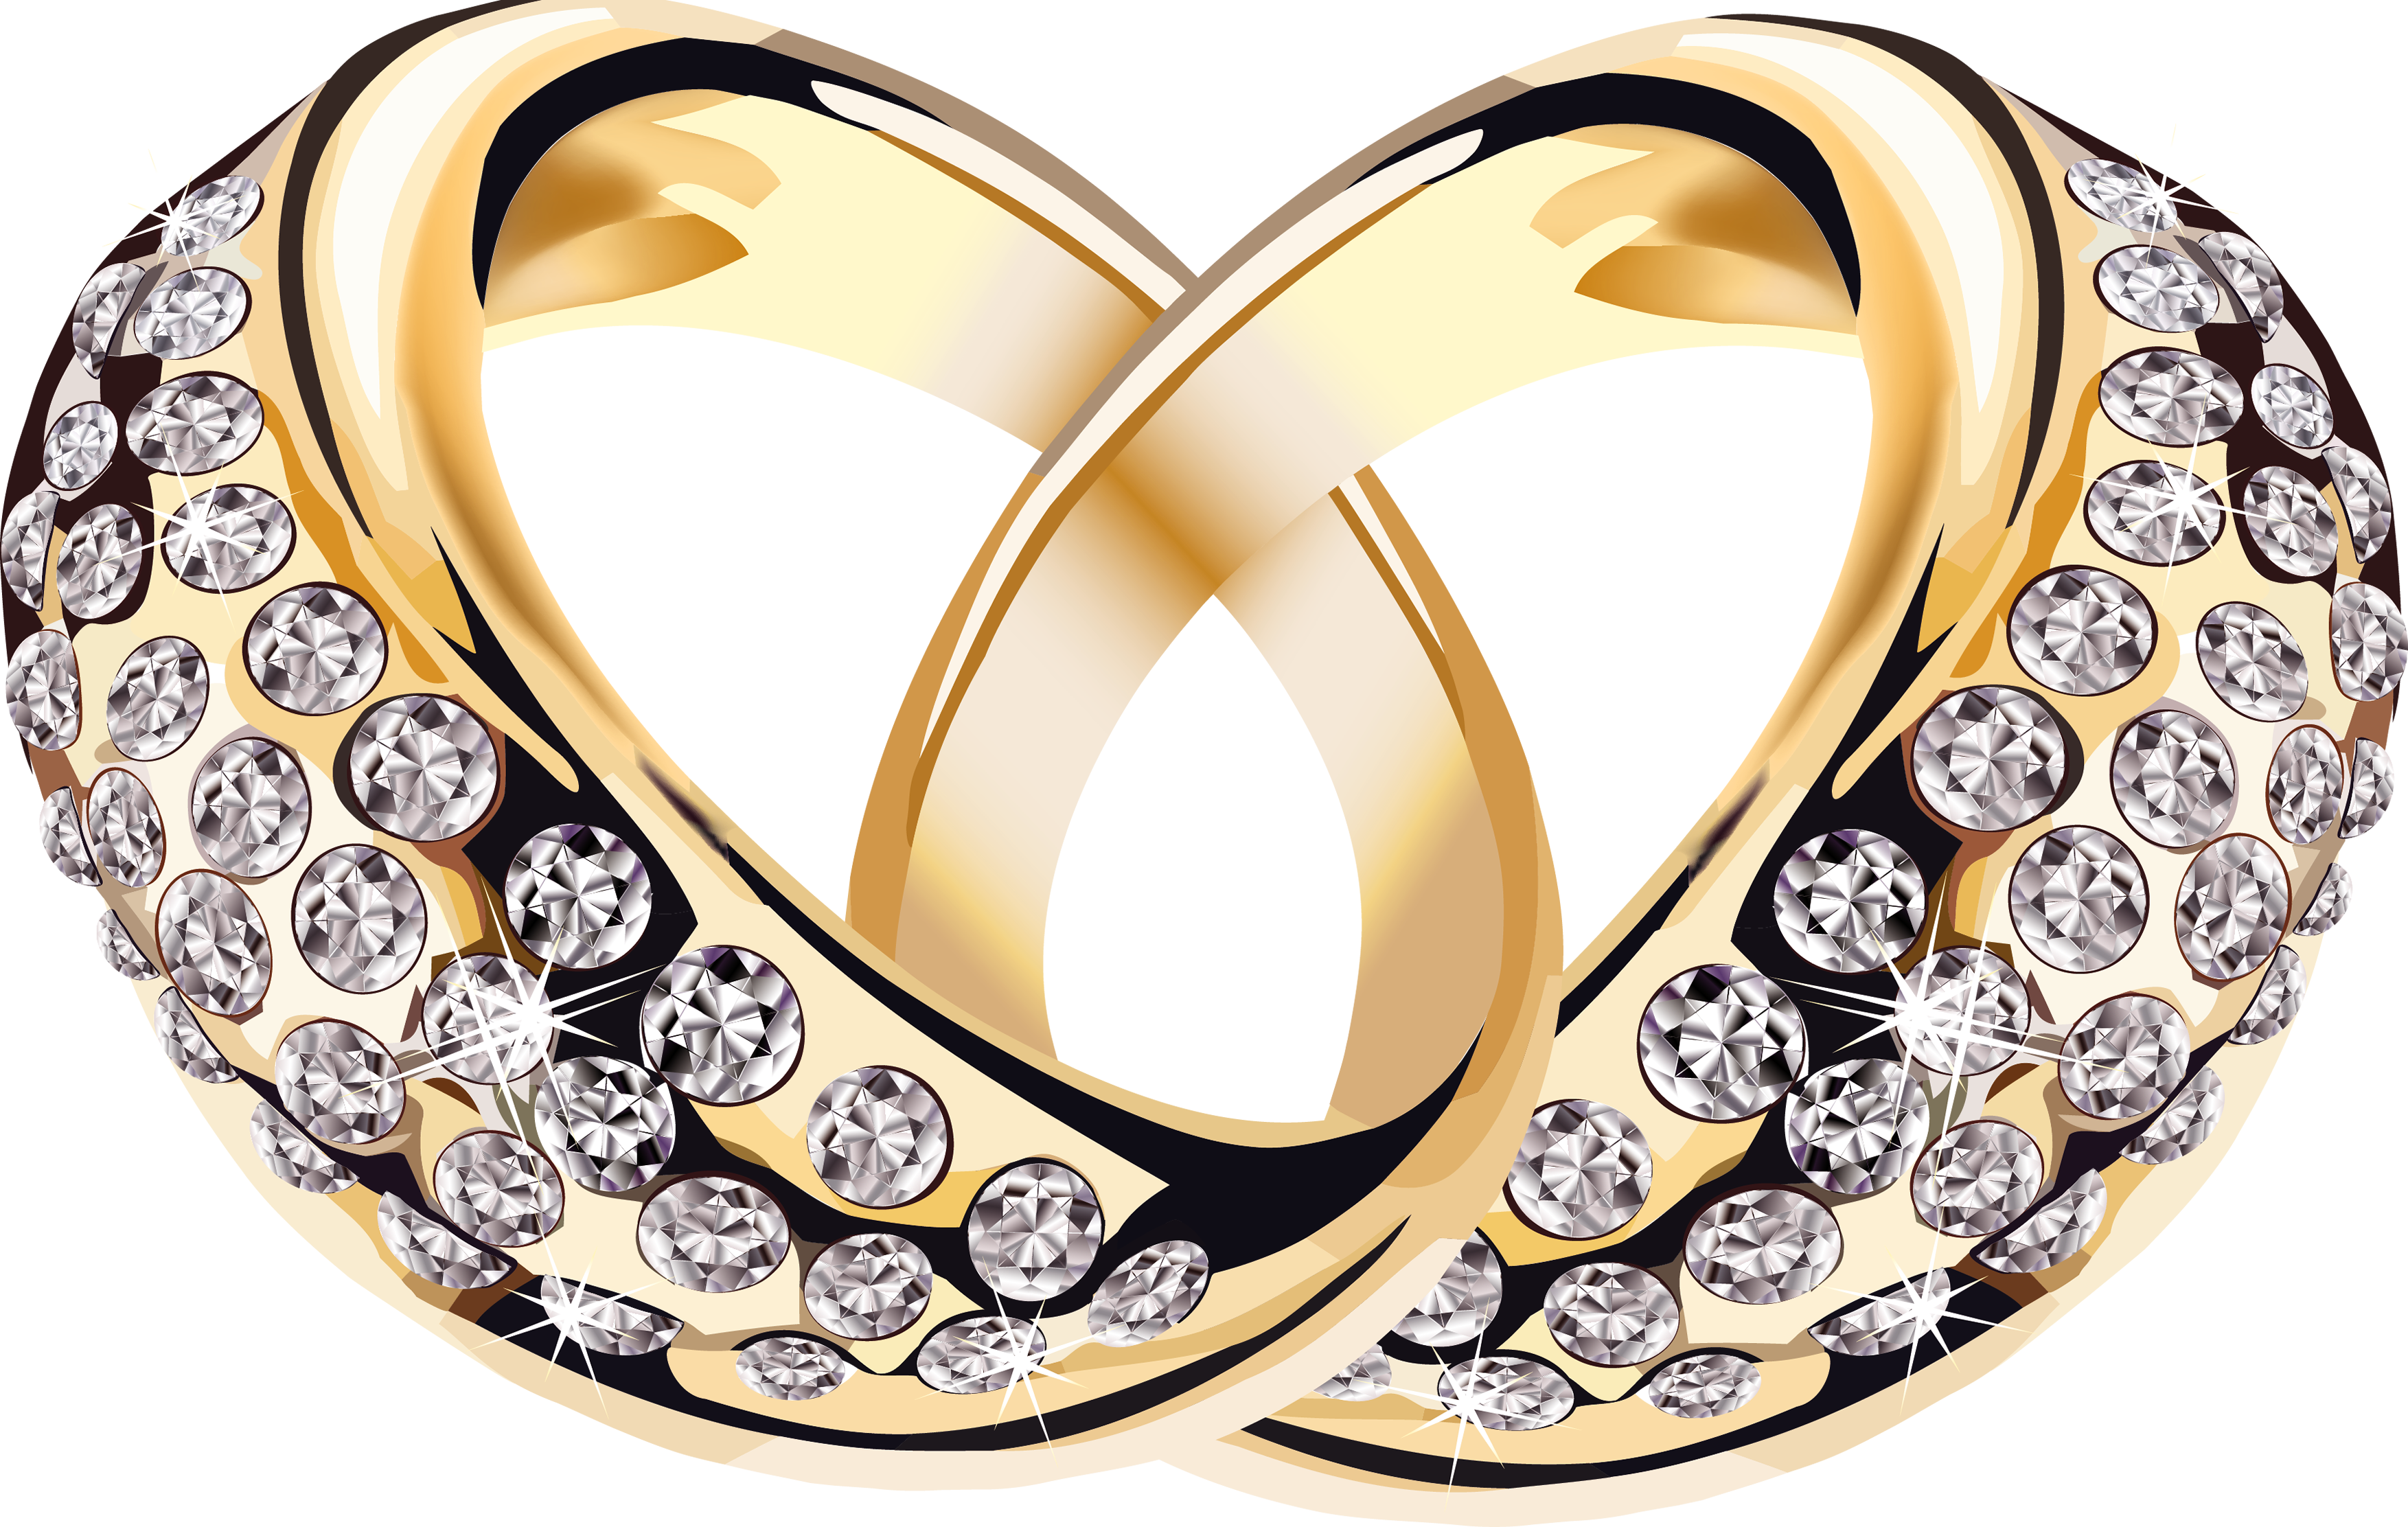 Png Jewelry & Free Jewelry.png Transparent Images #15538.